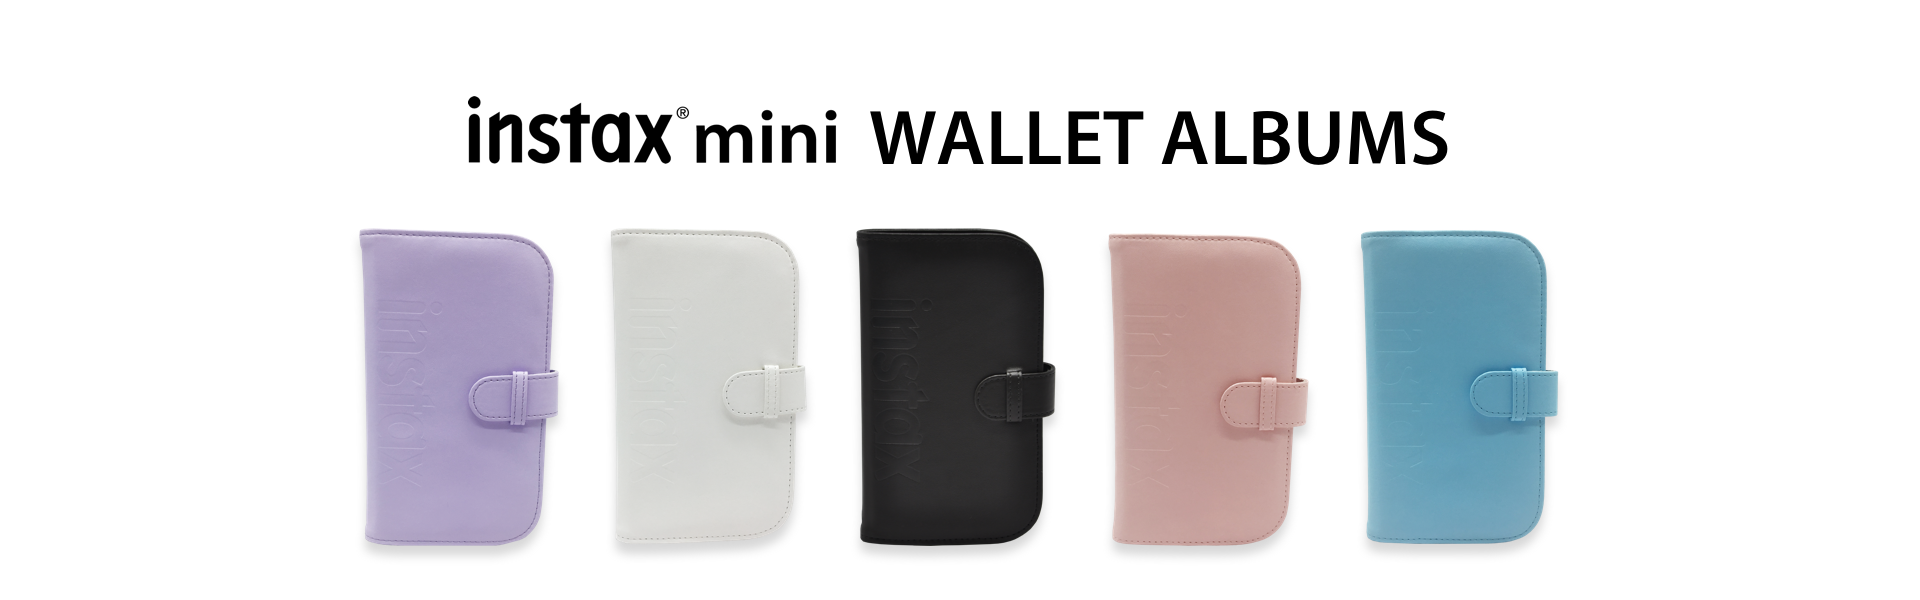 White Hero image with Mini Wallet Albums in different colors